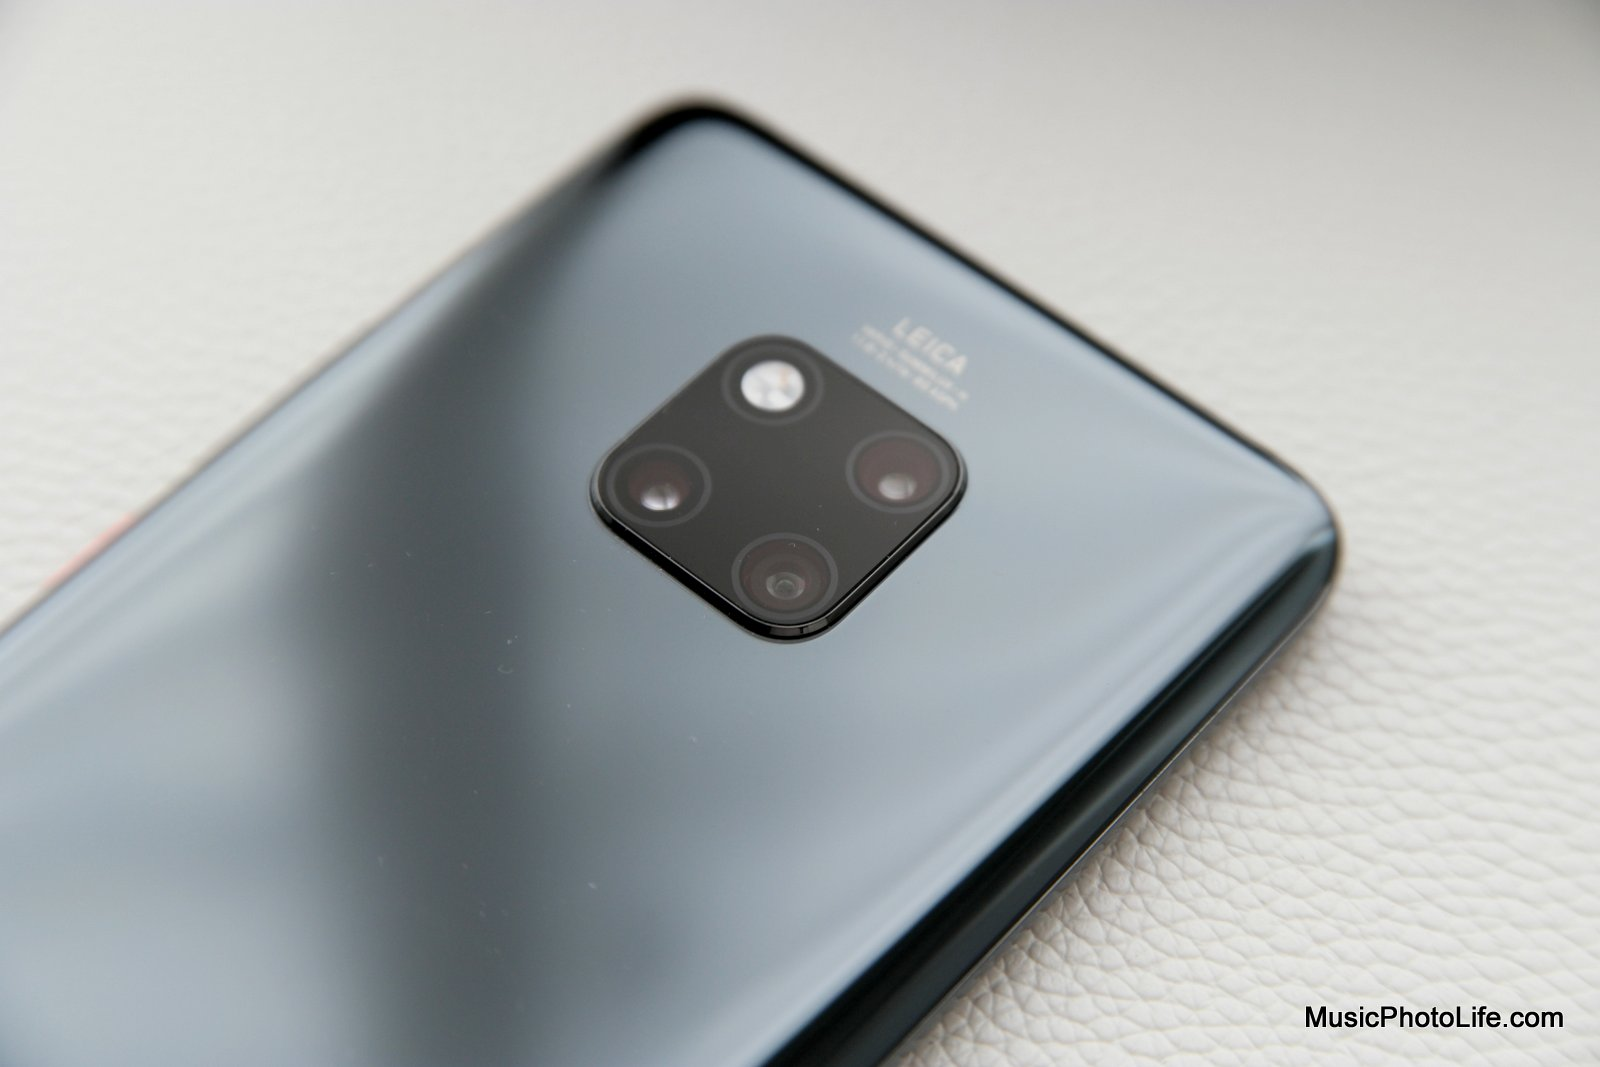 Huawei Mate 20 Pro review by musicphotolife.com, smartphone gadget blog in Singapore